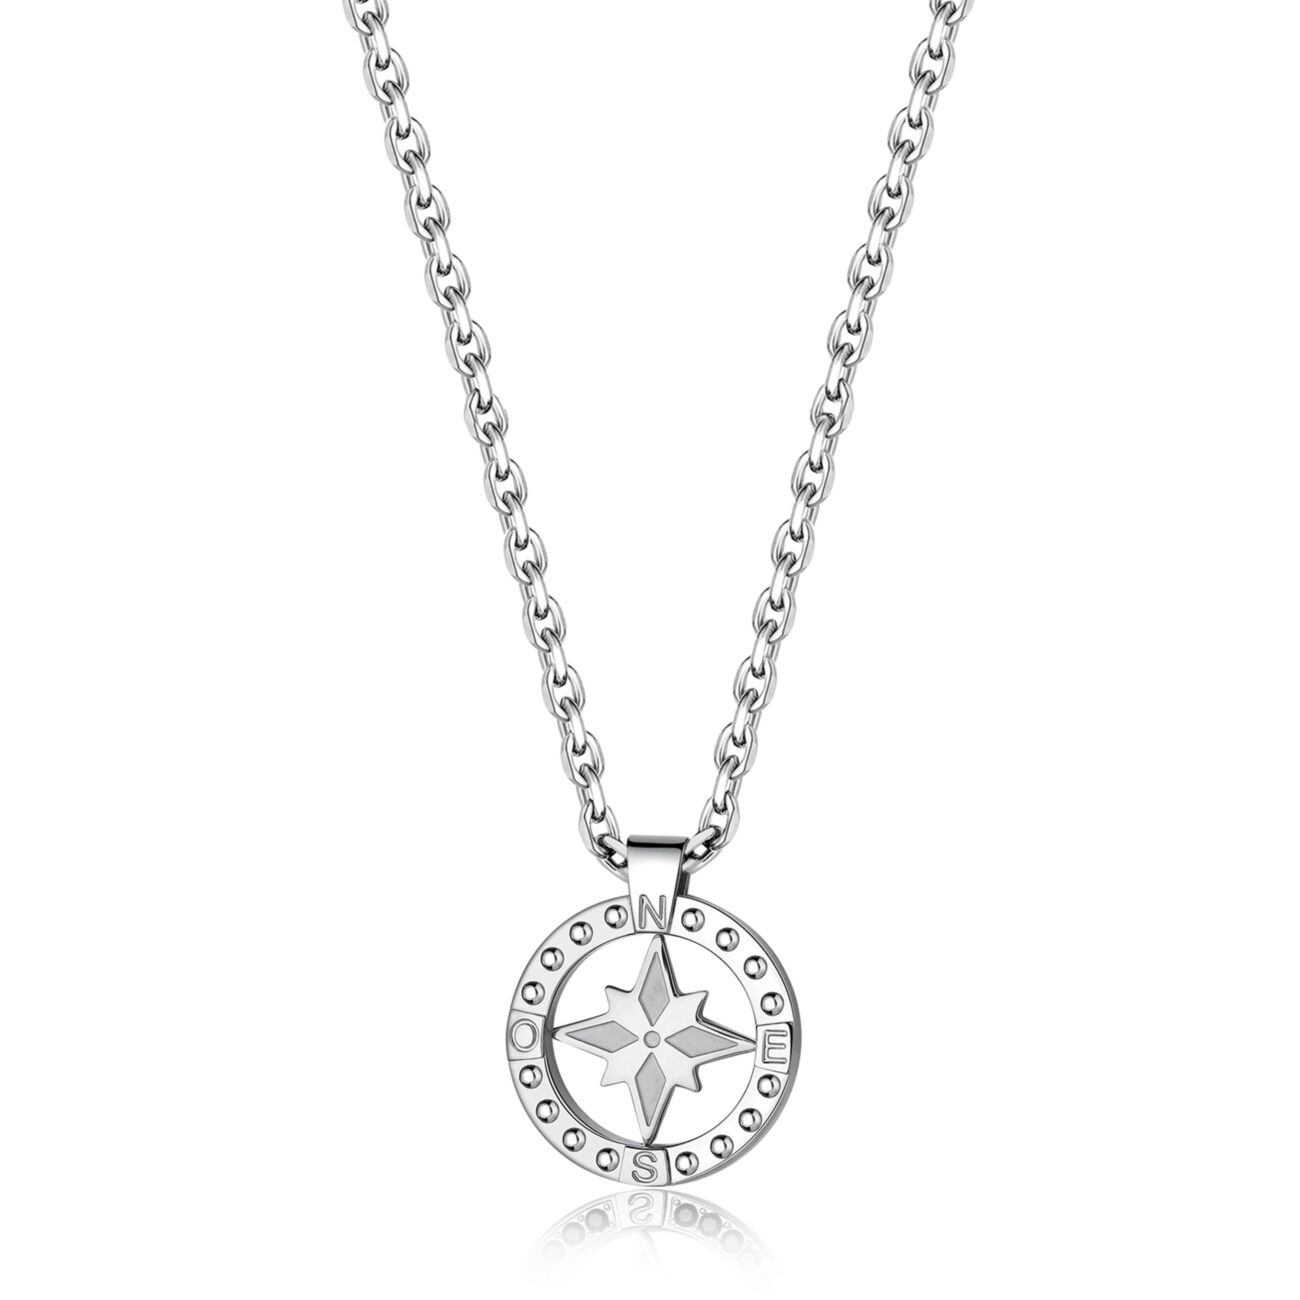 316L stainless steel necklace with large wind rose pendant.